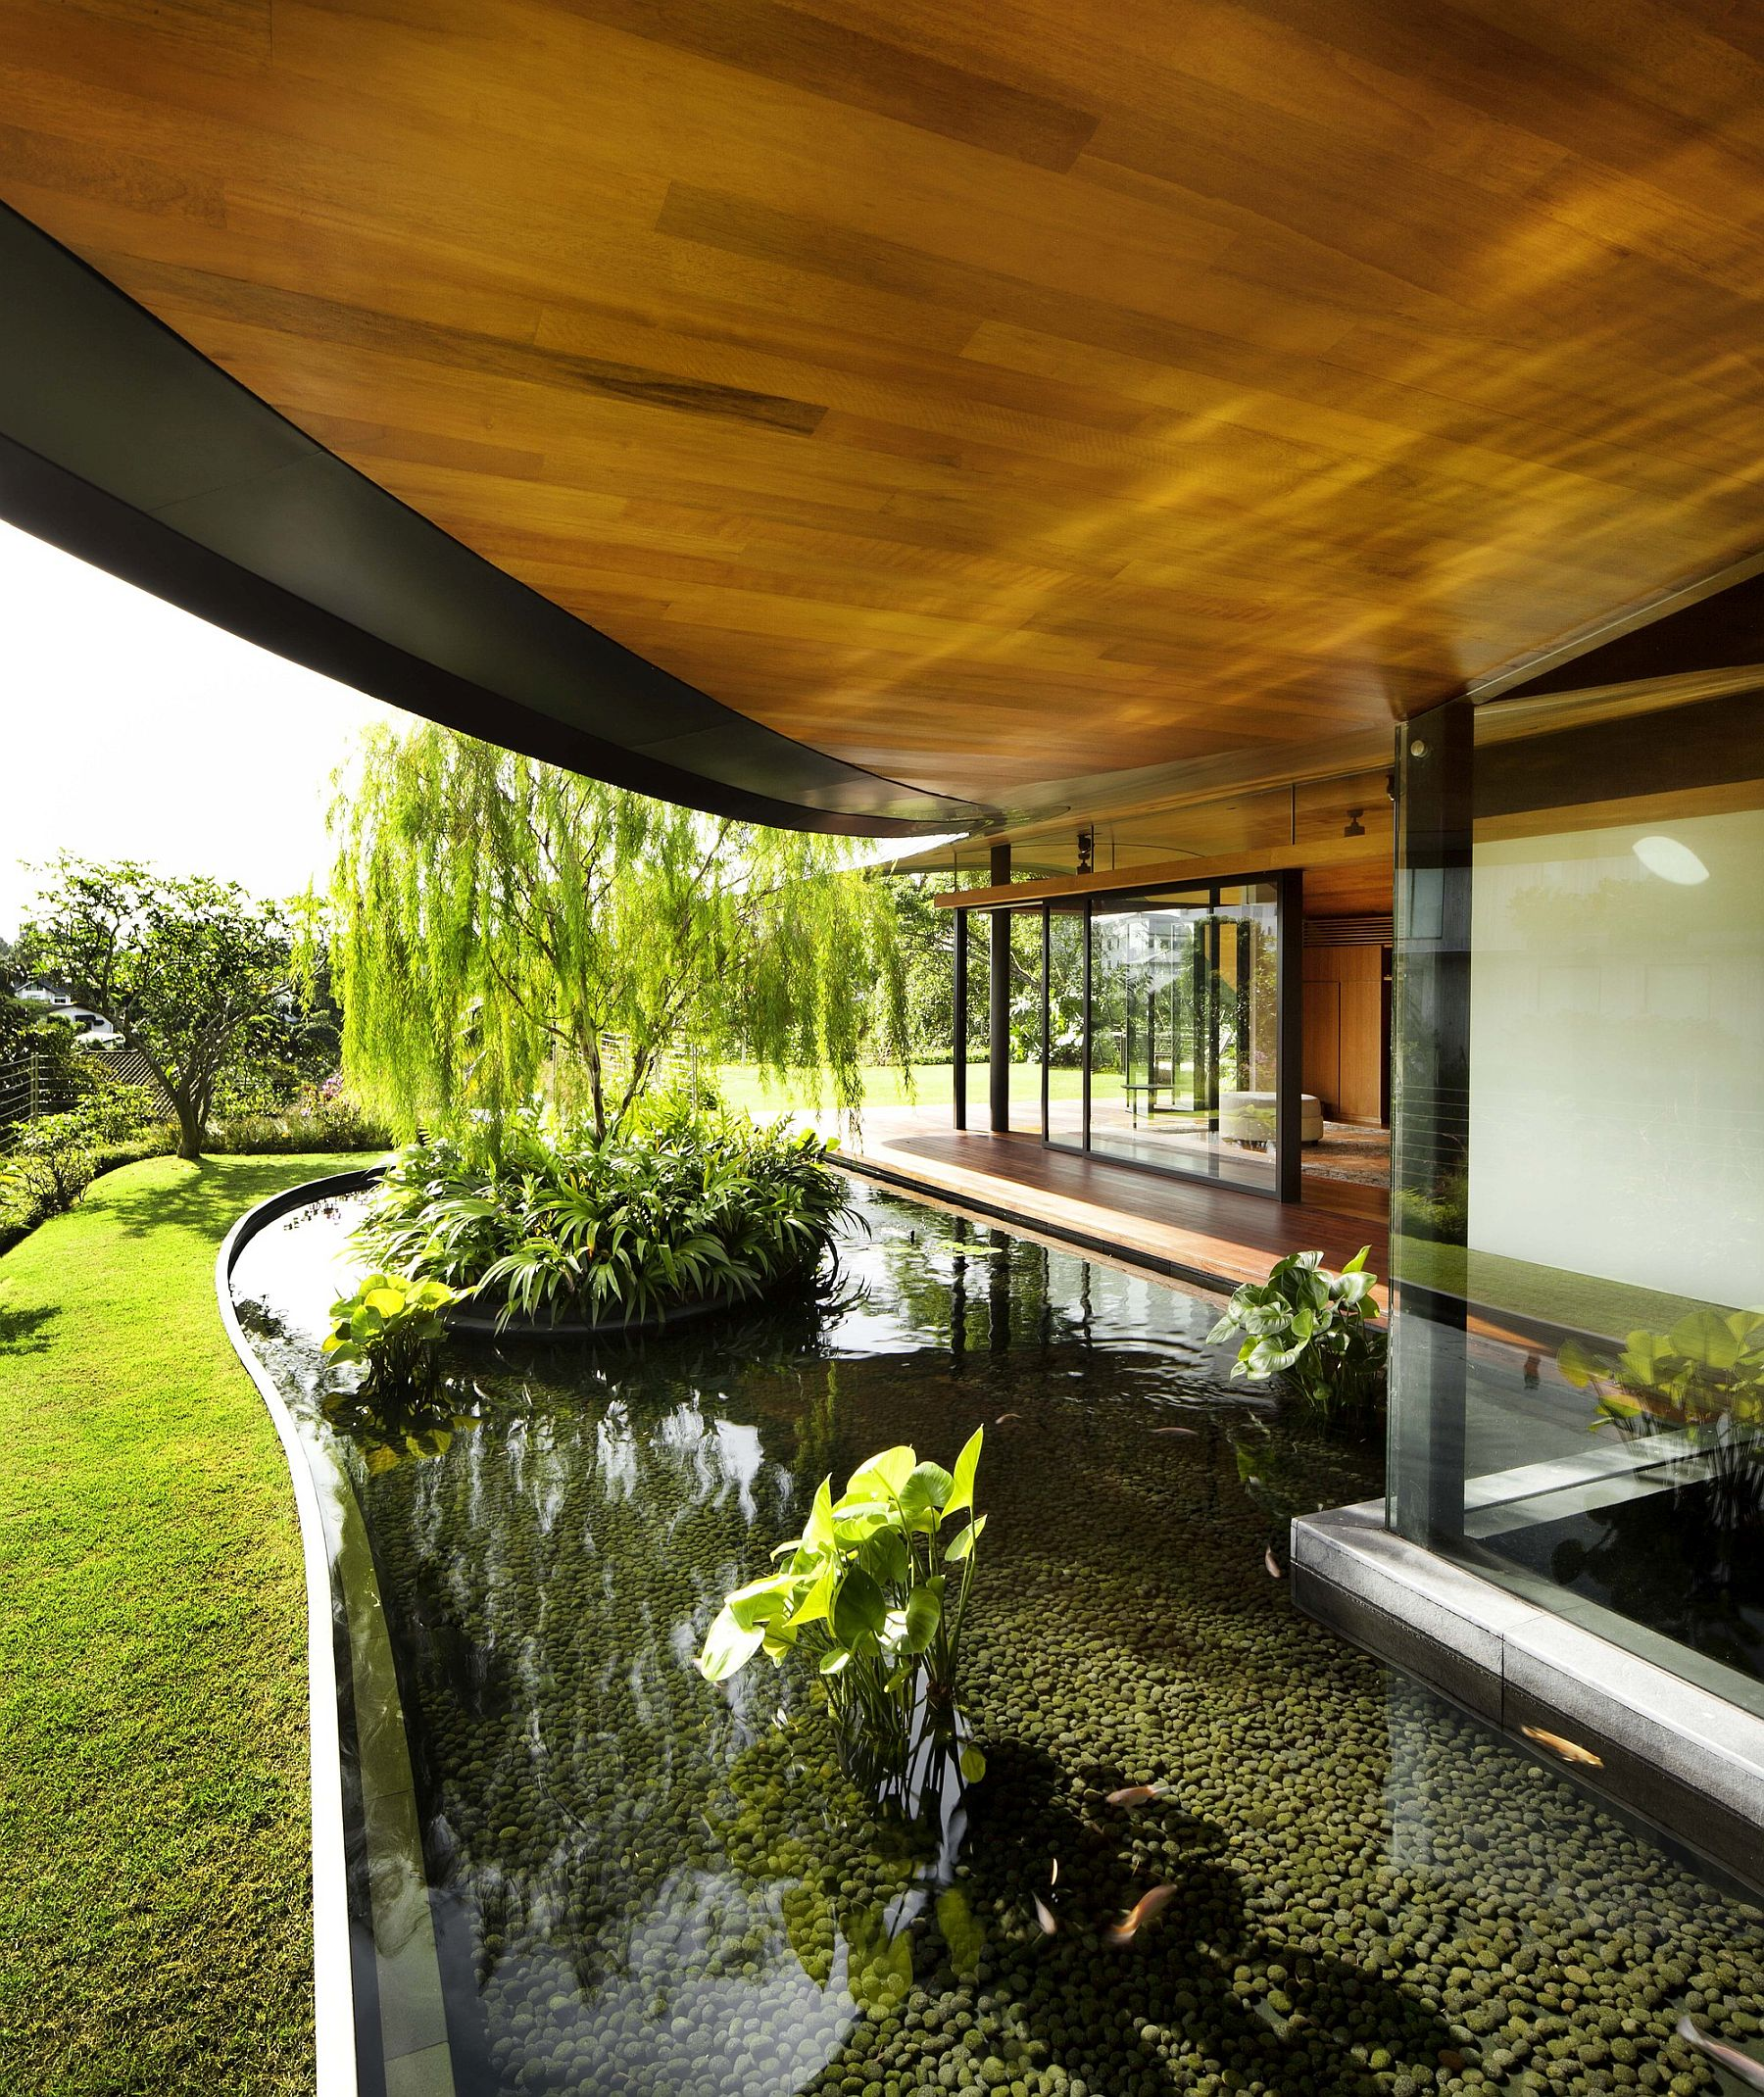 The Sun House By Guz Architects A Hevean Of Green In: Roof Gardens, Bio-Pond And A World Of Inviting Green Await